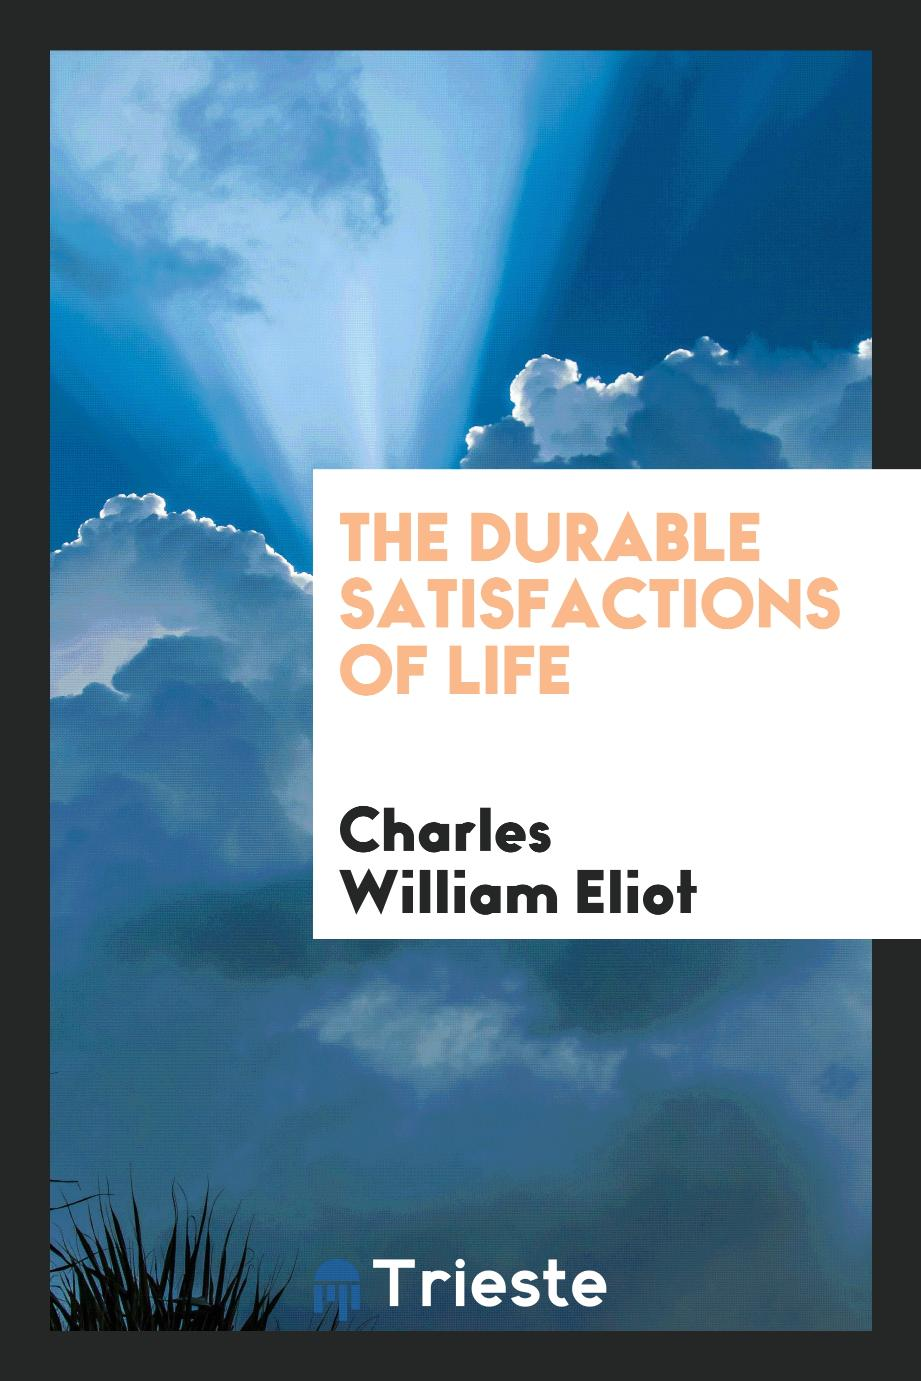 The durable satisfactions of life